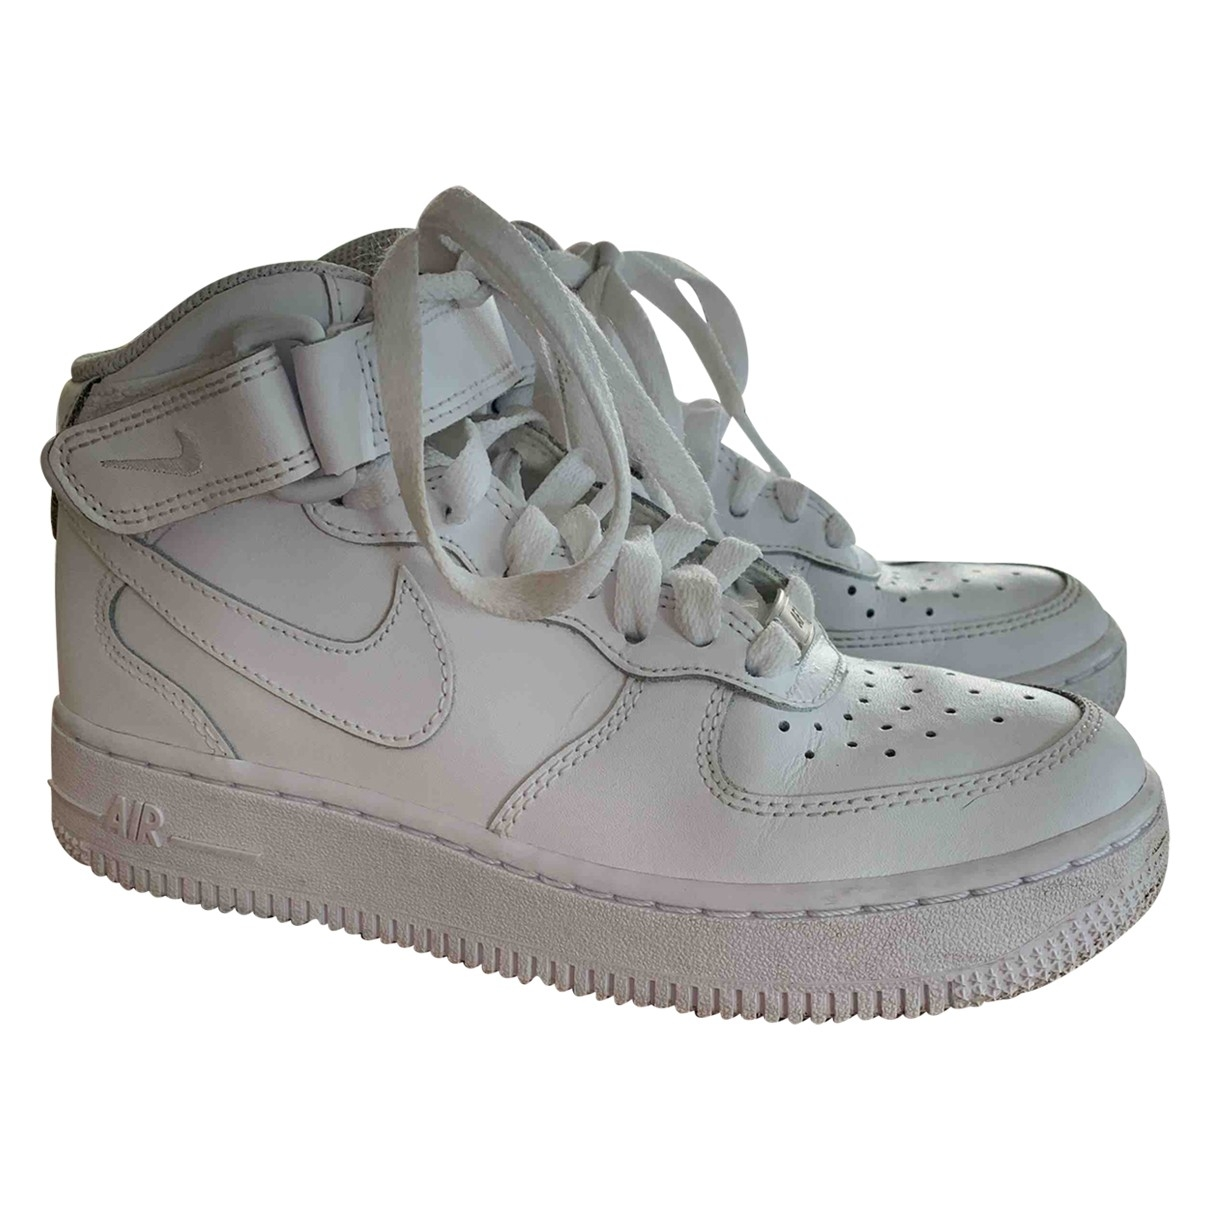 Nike Air Force 1 White Leather Trainers for Kids 36 EU